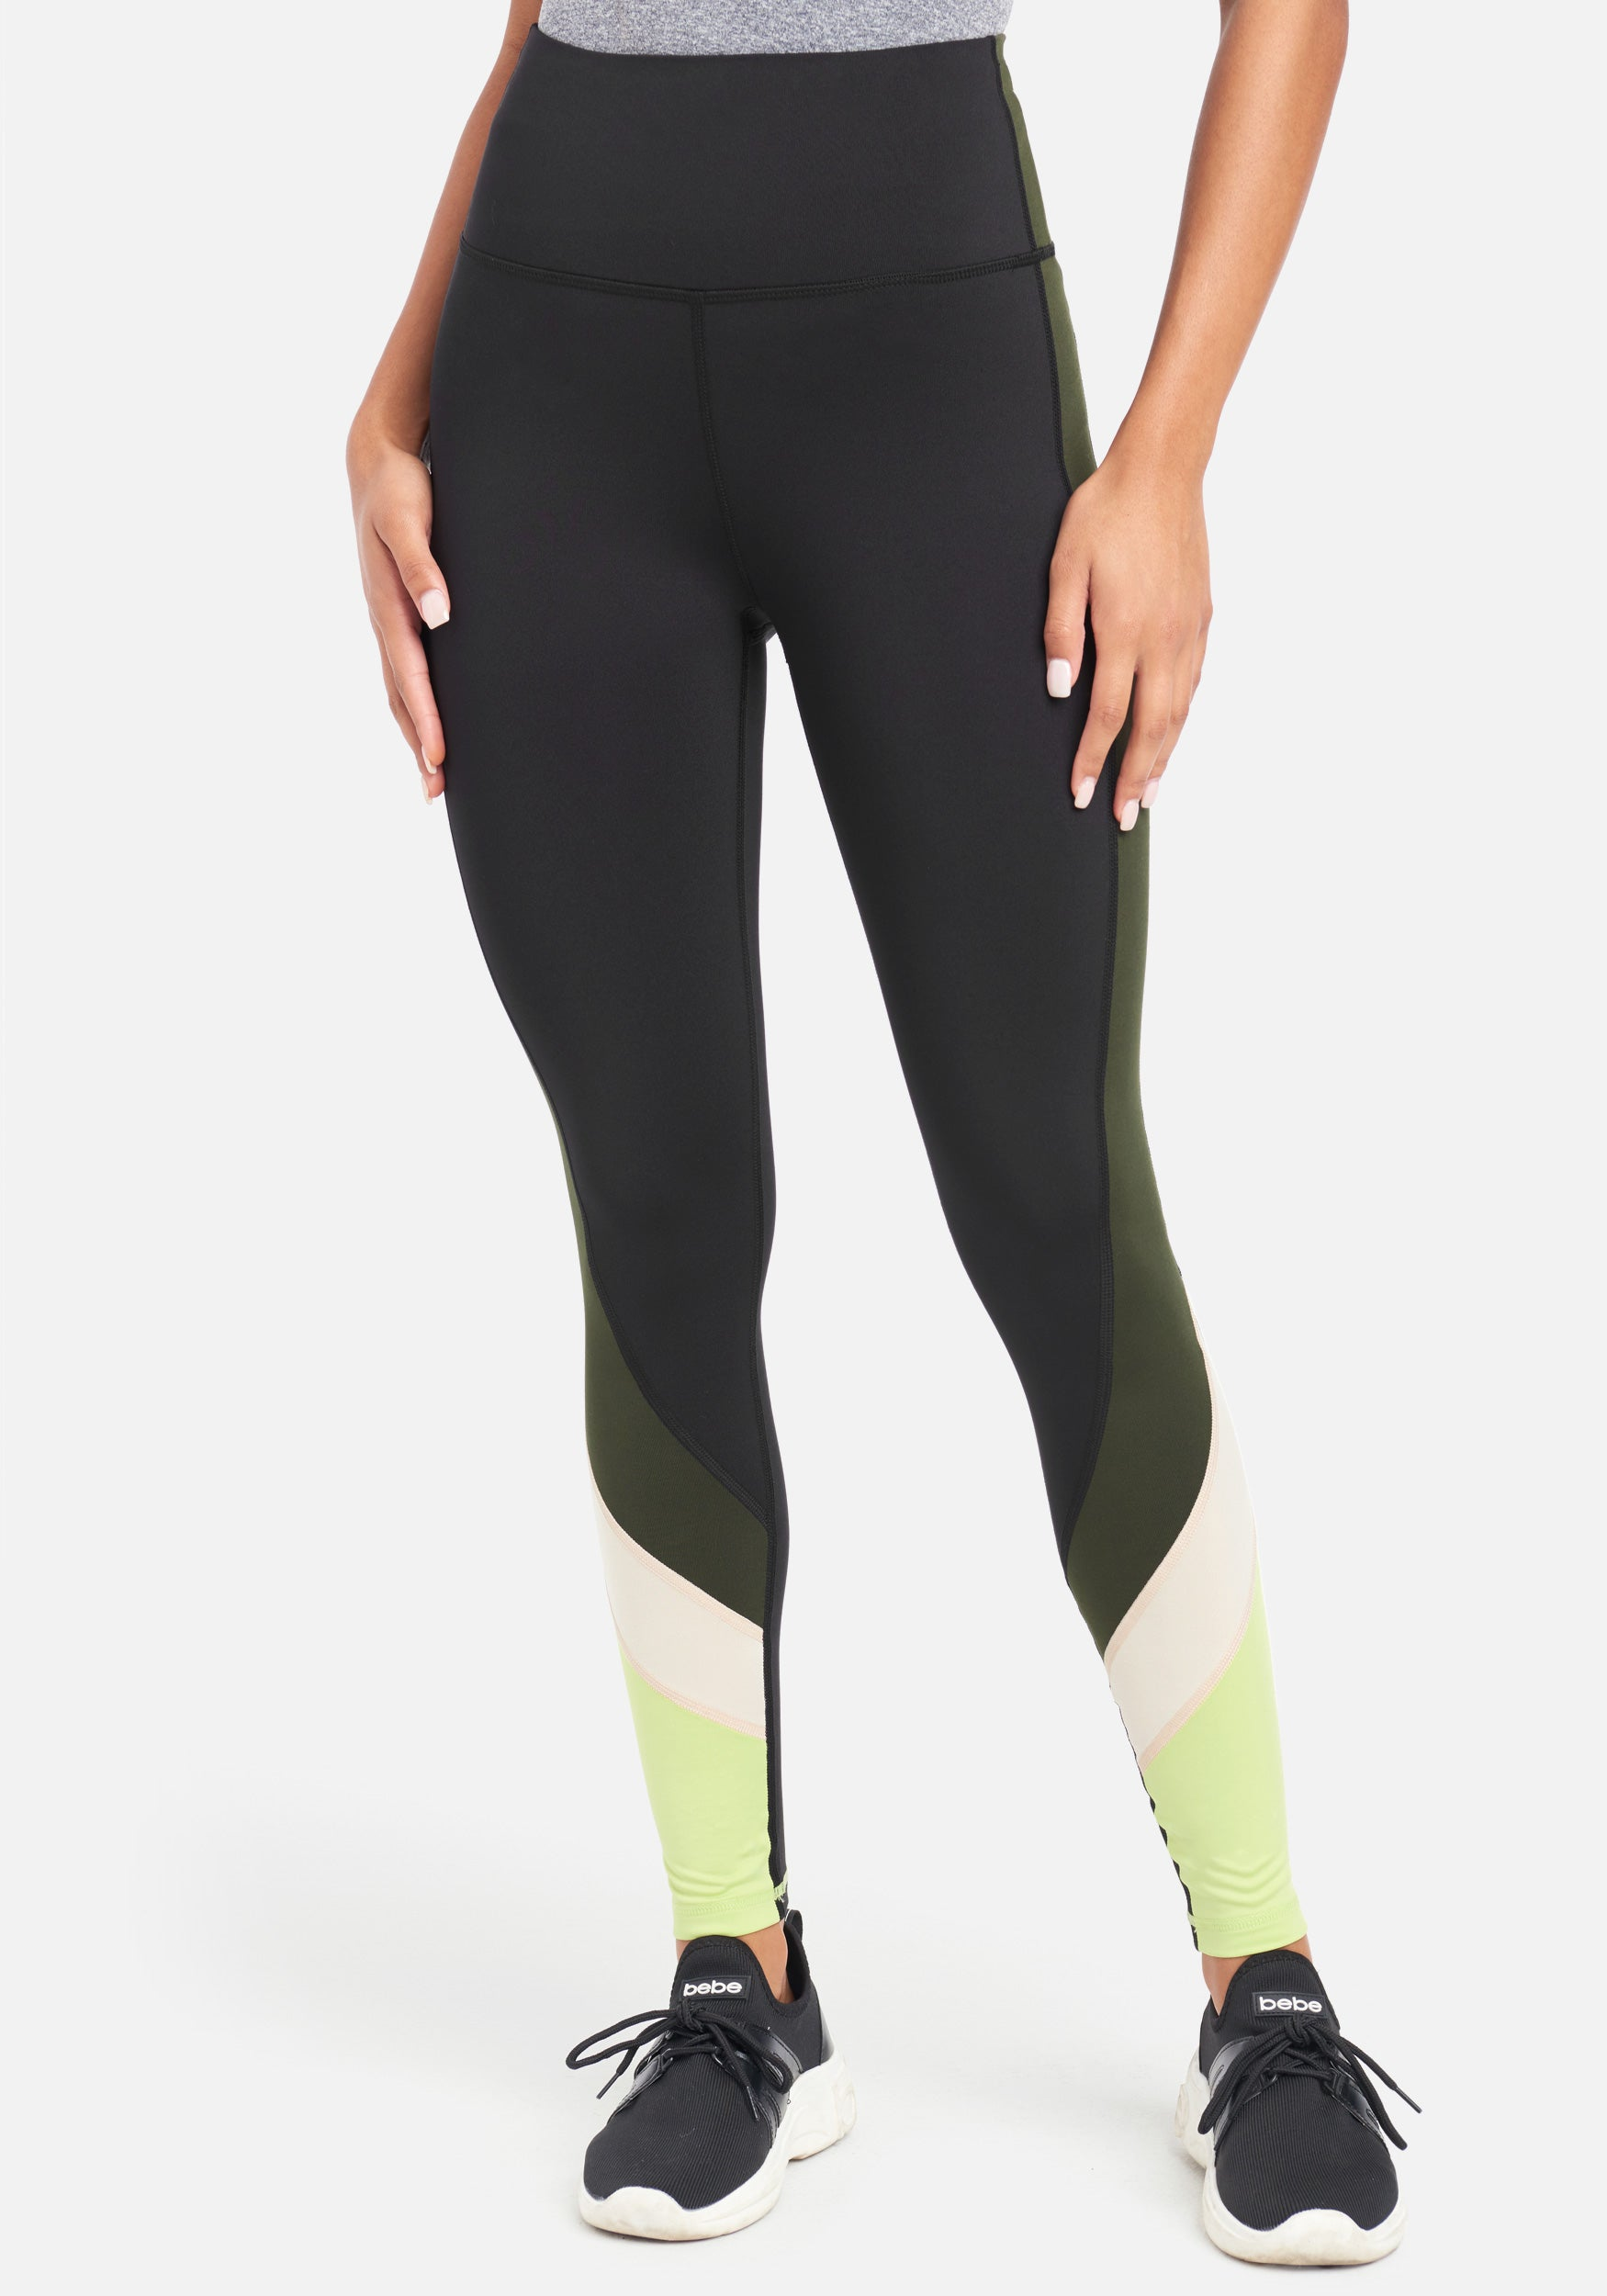 Women's Bebe Sport Color Block Legging, Size Small in Black/Forest